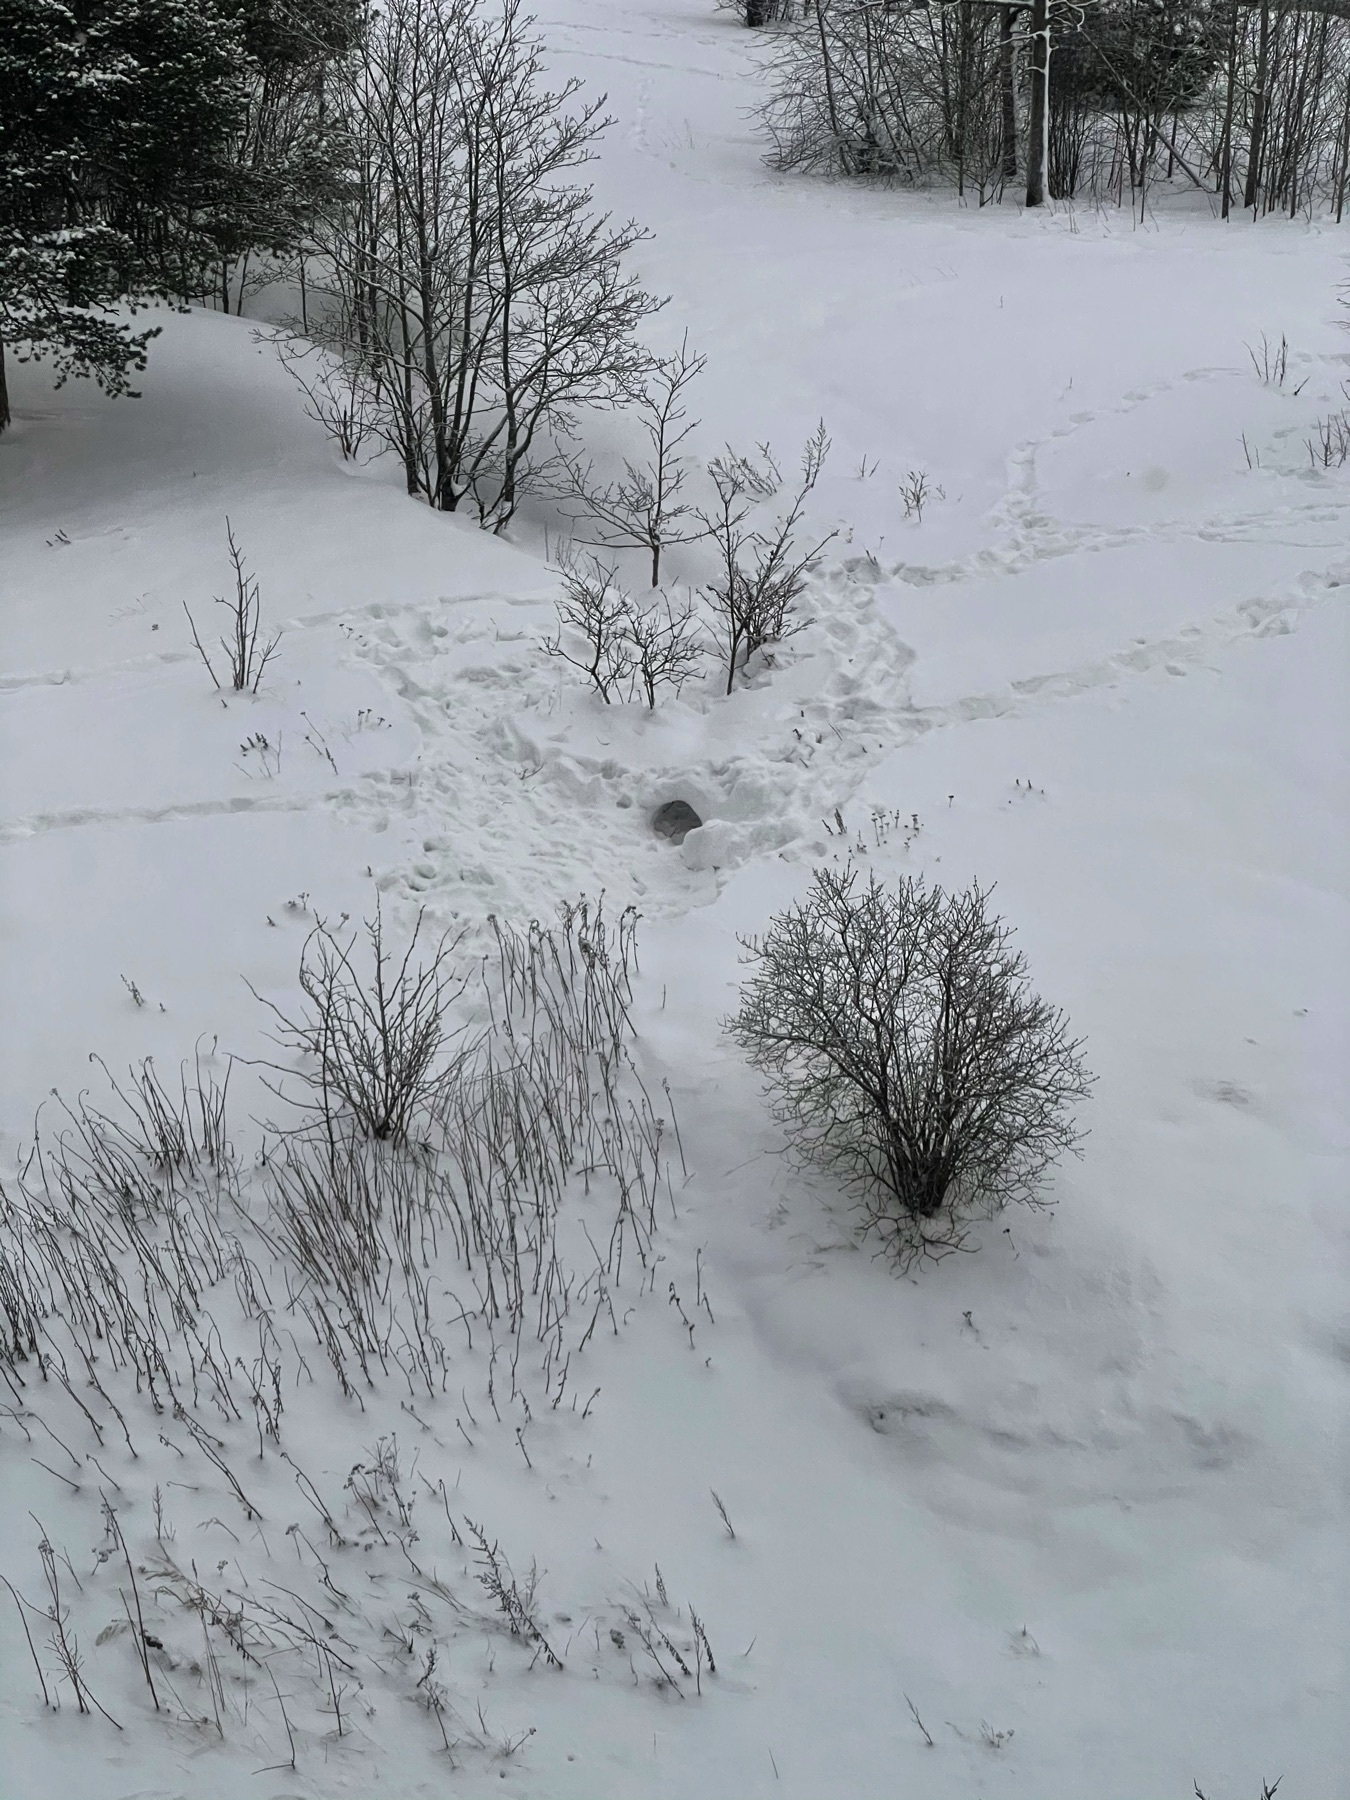 snowy hill from window, some winterseeder plants pushing through snow